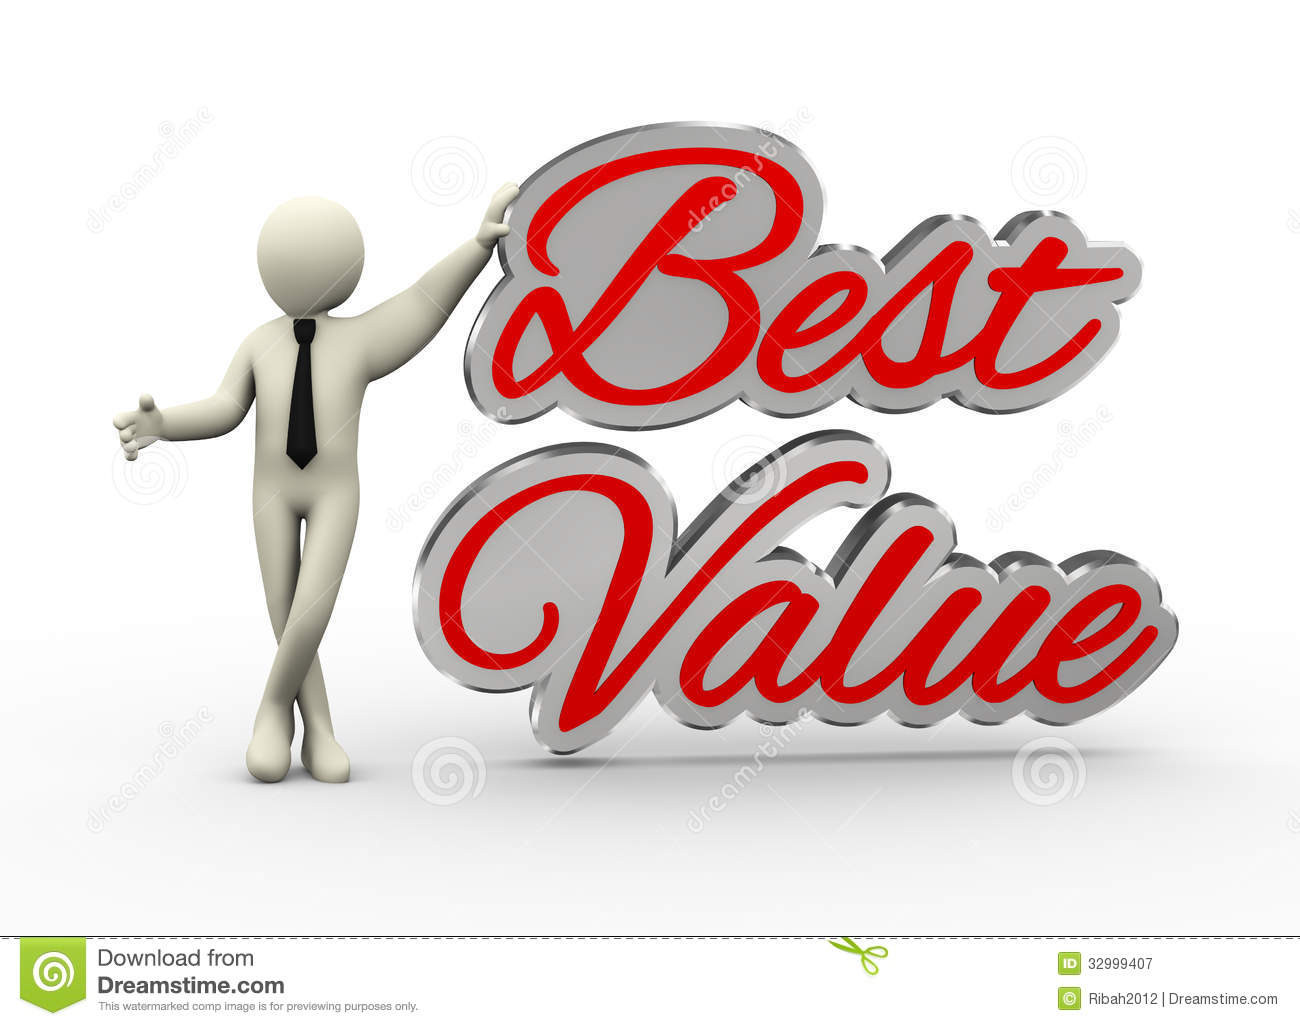 What Is A Person's Value? What Is Their Worth? - Poem by Christine A Kysely